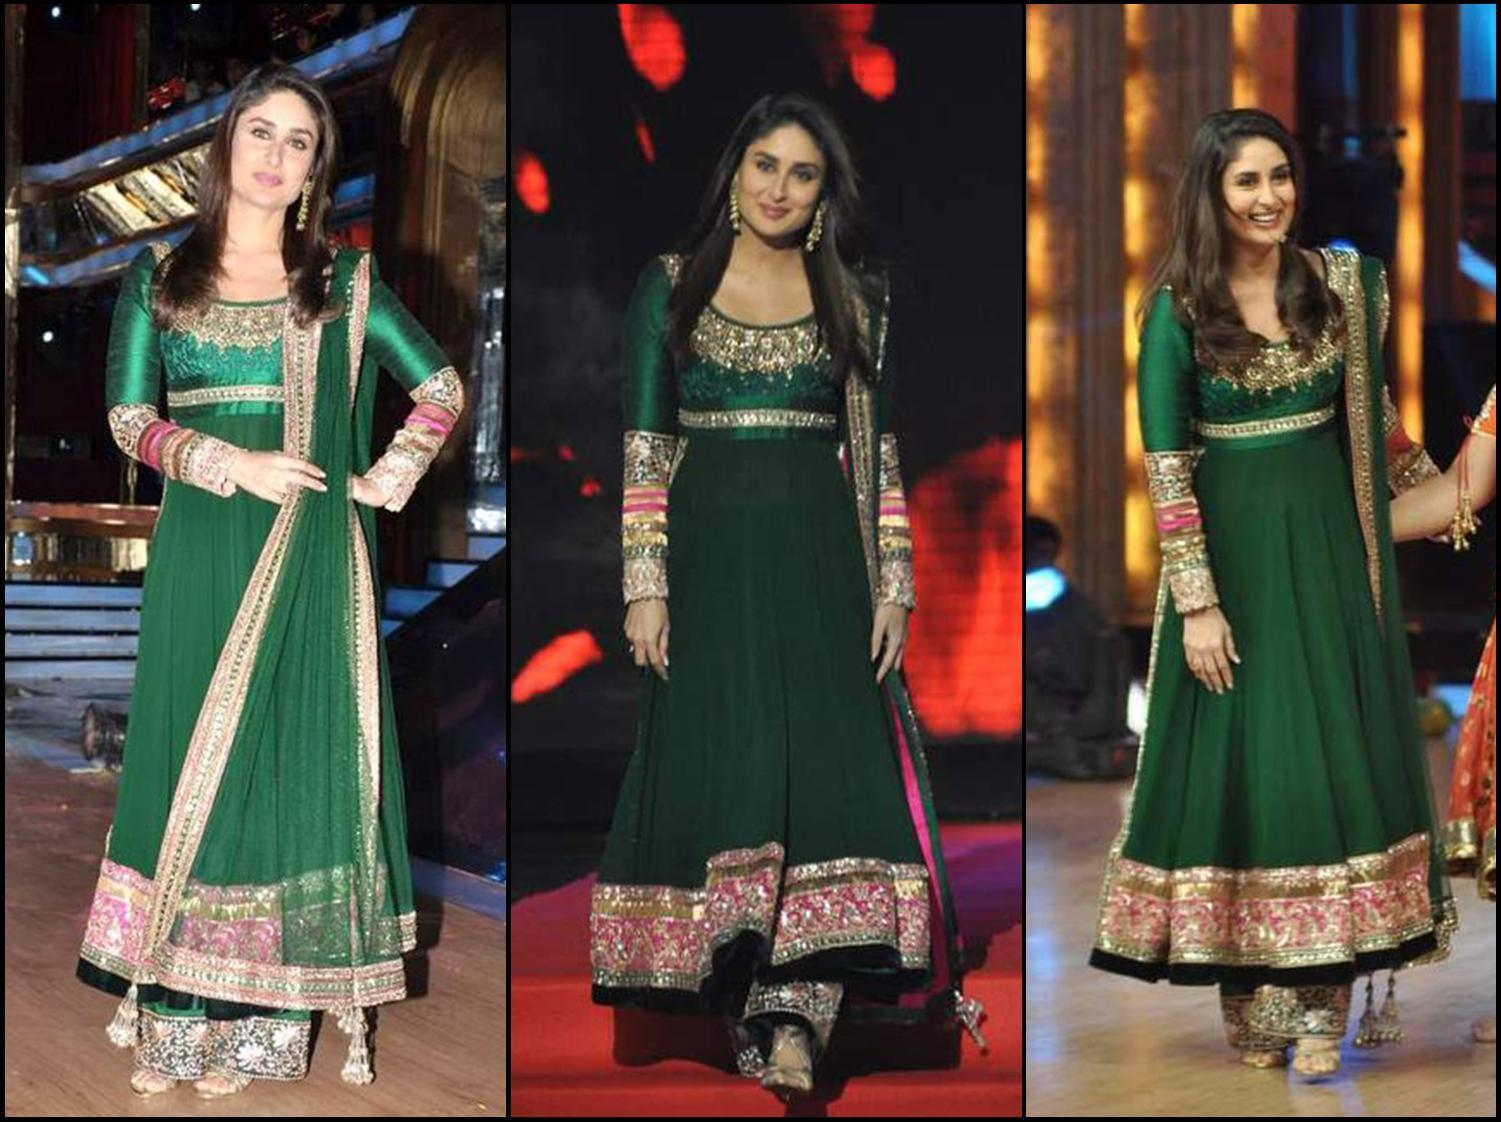 ... New Brands: Manish Malhotra Designer Indian Bollywood Wedding Dresses